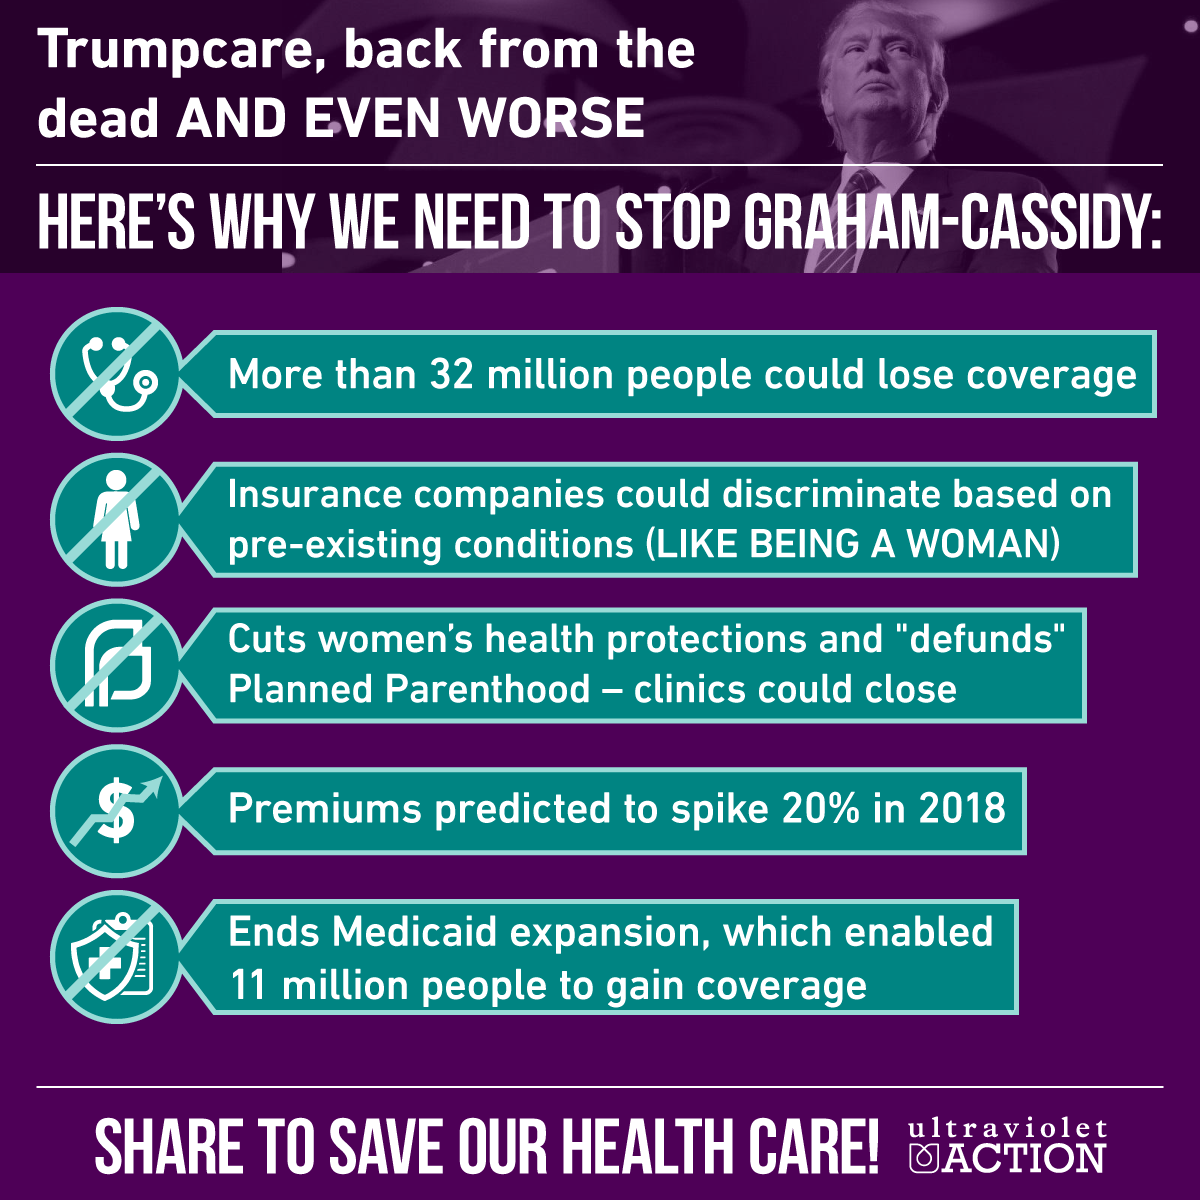 What you need to know about Graham-Cassidy